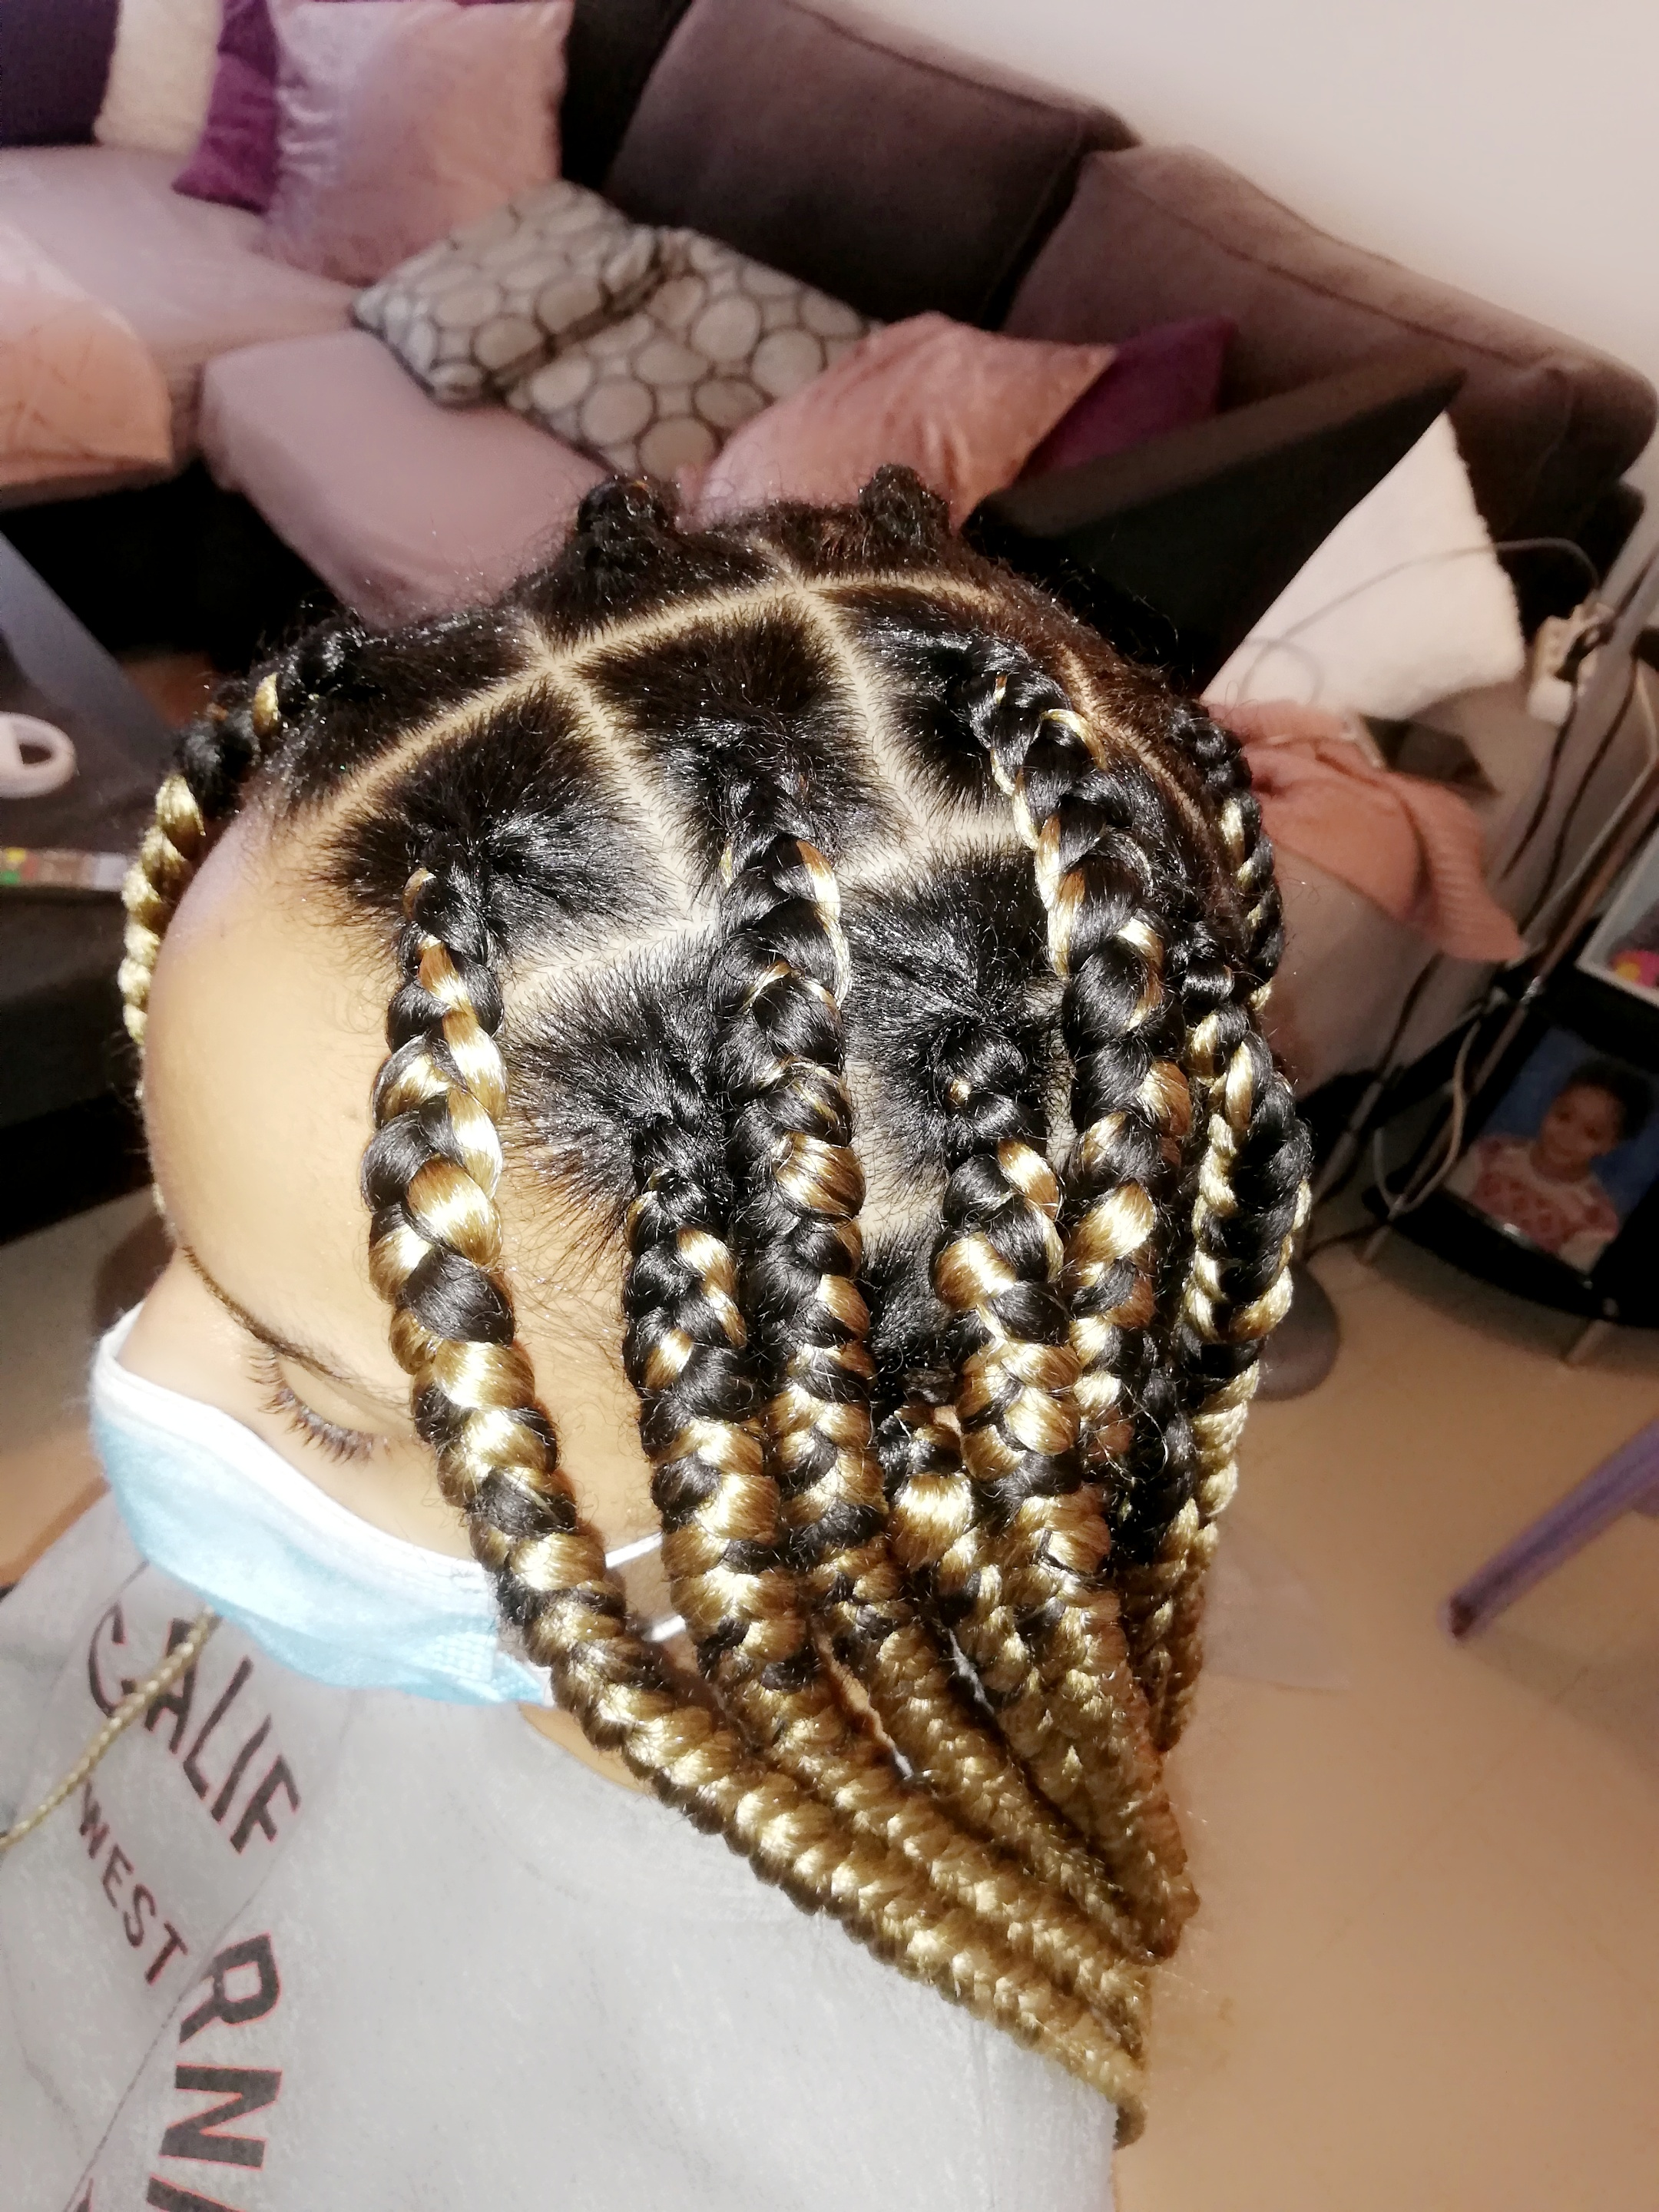 salon de coiffure afro tresse tresses box braids crochet braids vanilles tissages paris 75 77 78 91 92 93 94 95 QAFLFUNM